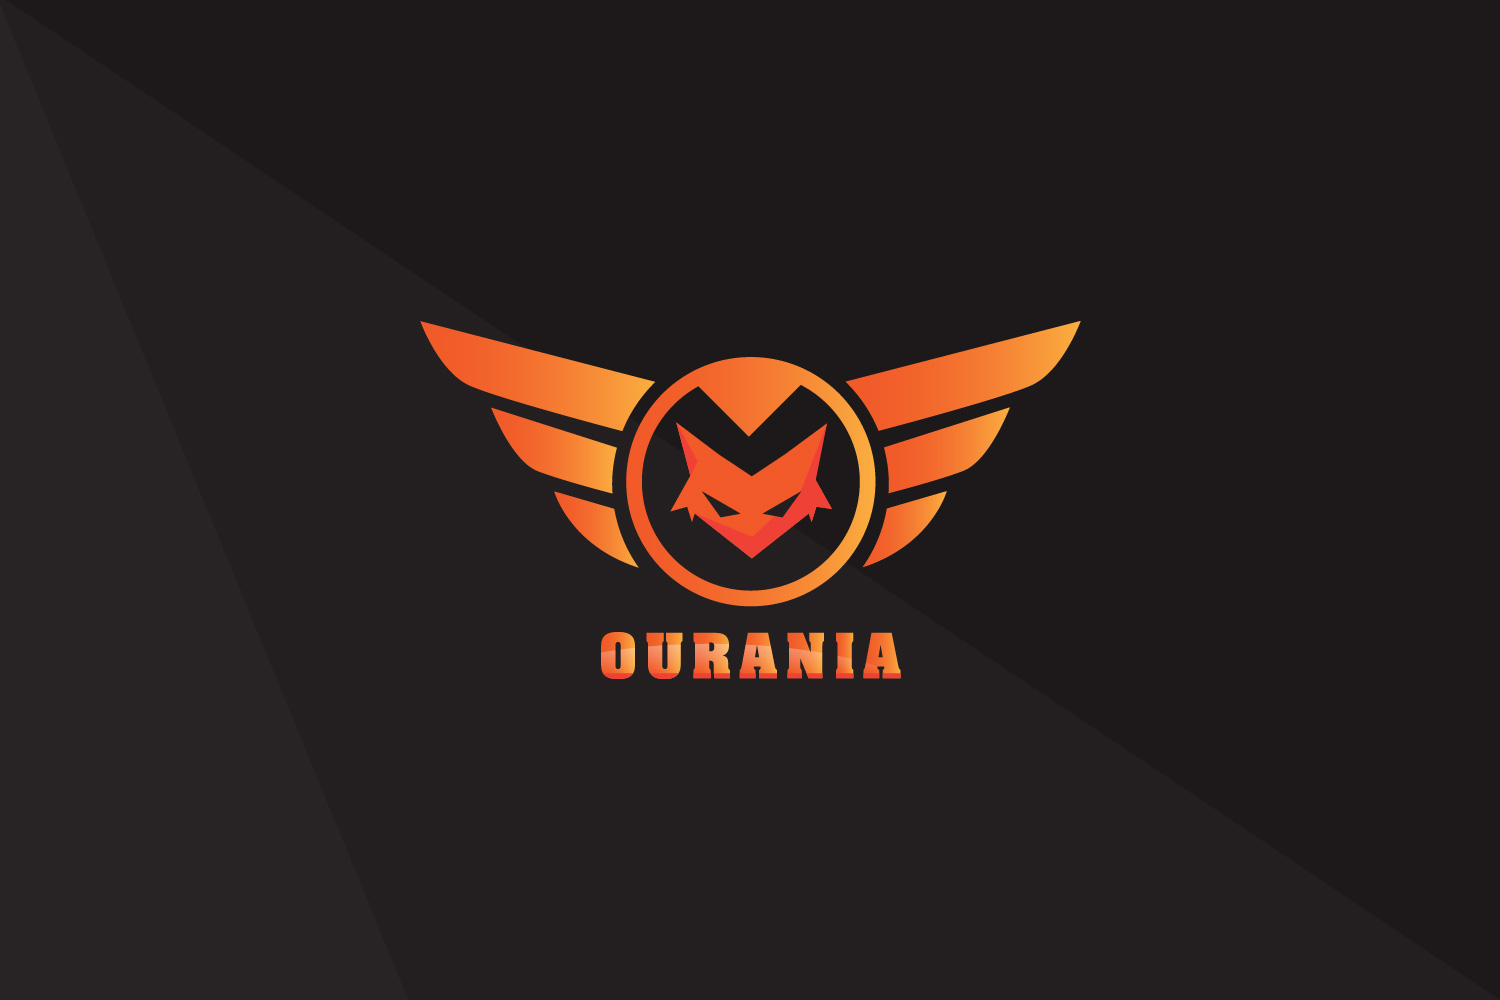 Ourania Gamer Logo Design